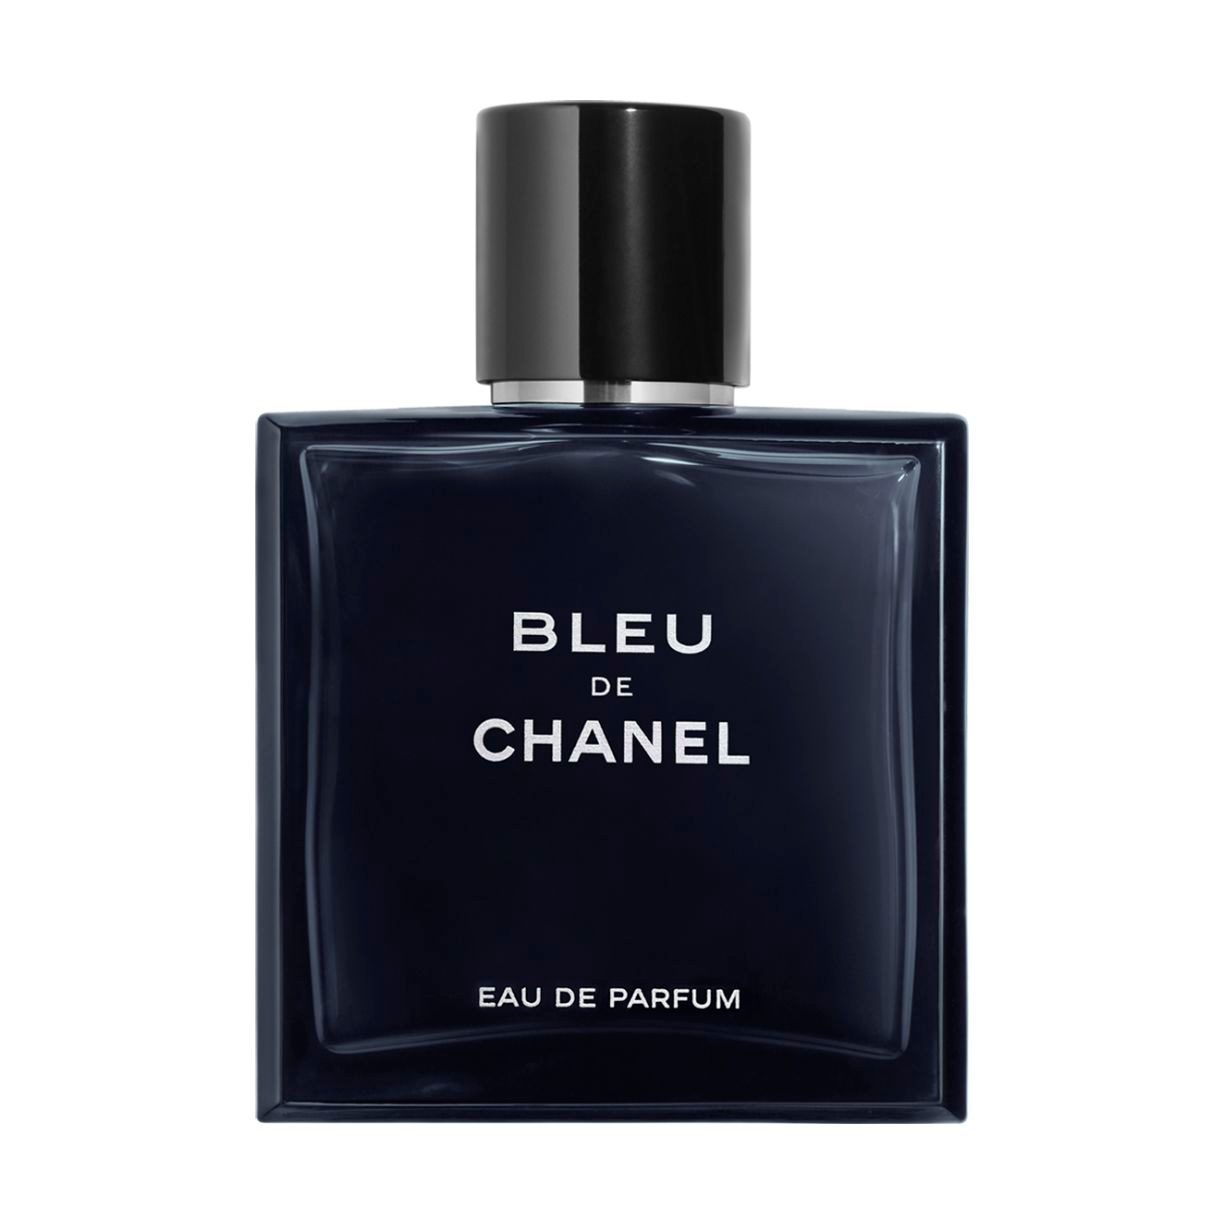 bleu de chanel chanel site officiel et boutique en ligne. Black Bedroom Furniture Sets. Home Design Ideas